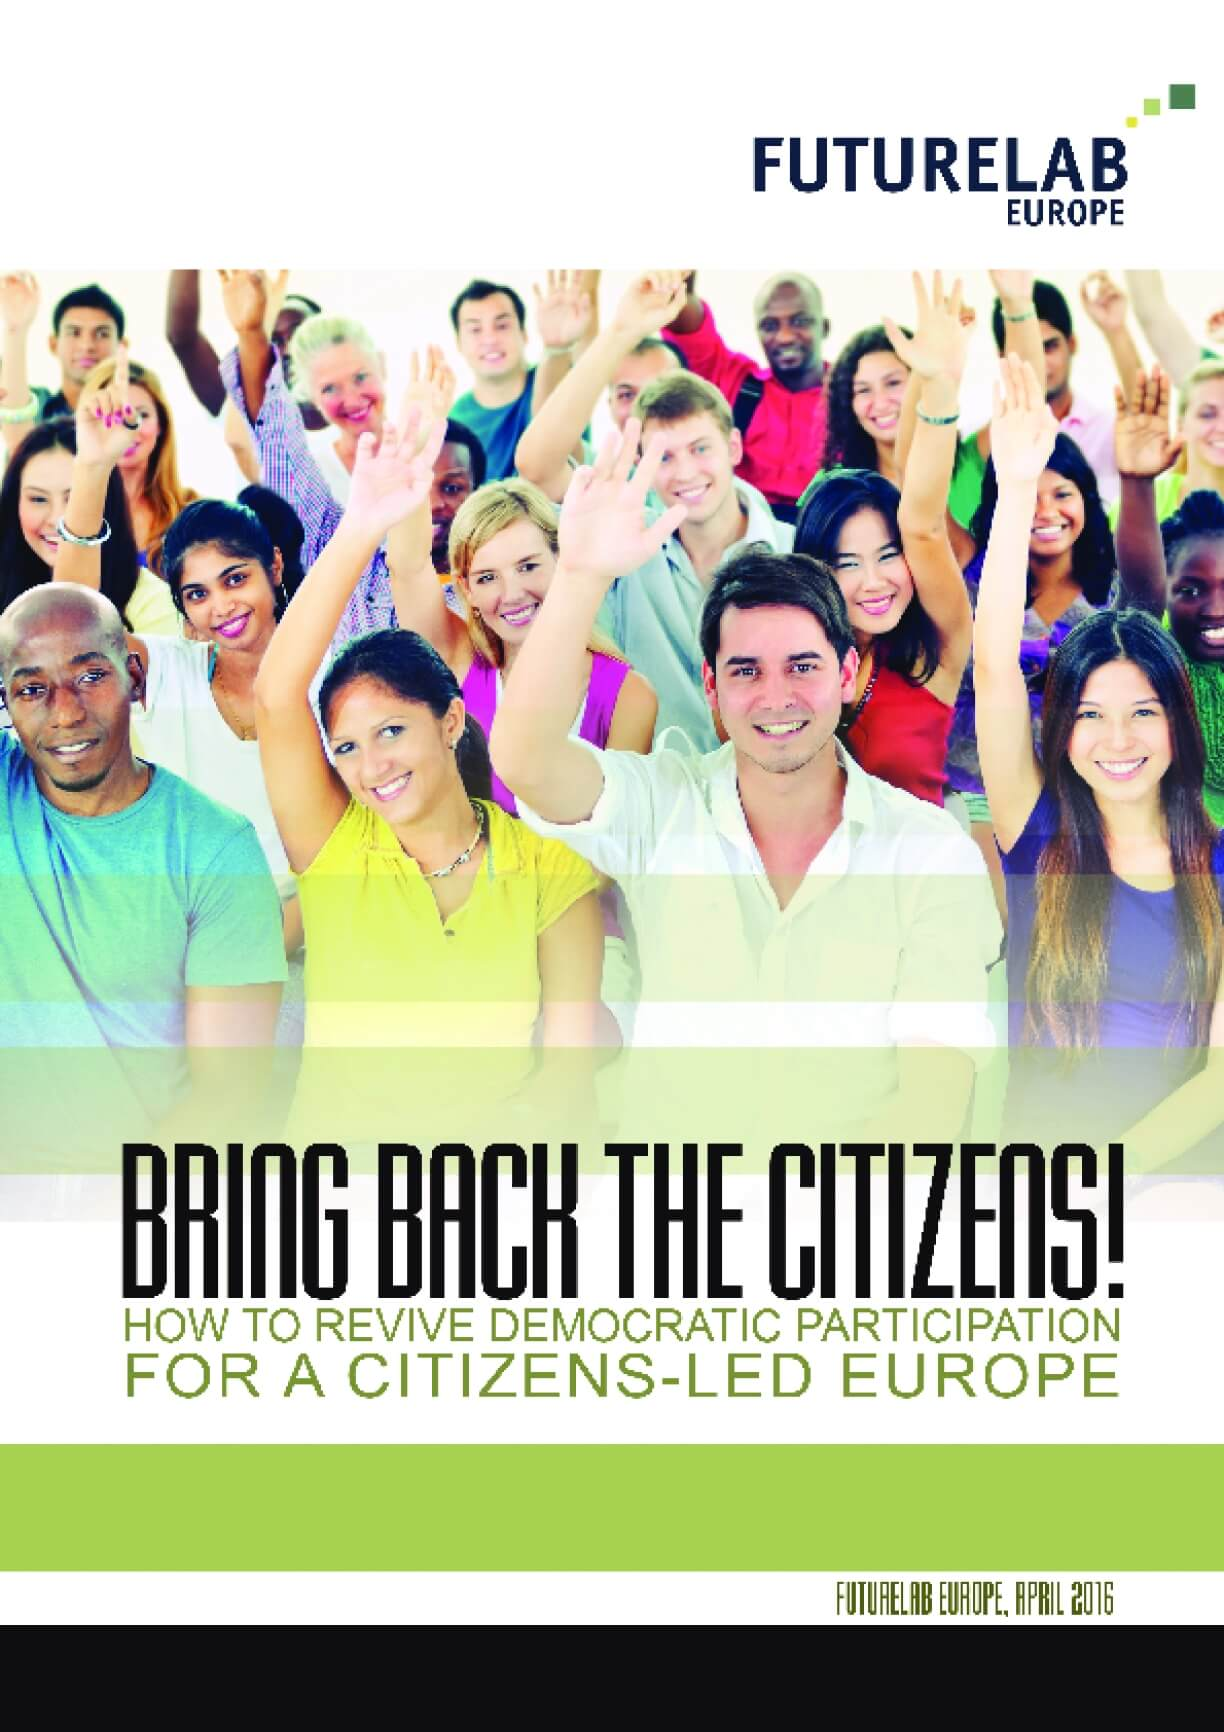 Bring back the citizens! How to revive democratic participation for a citizens-led Europe